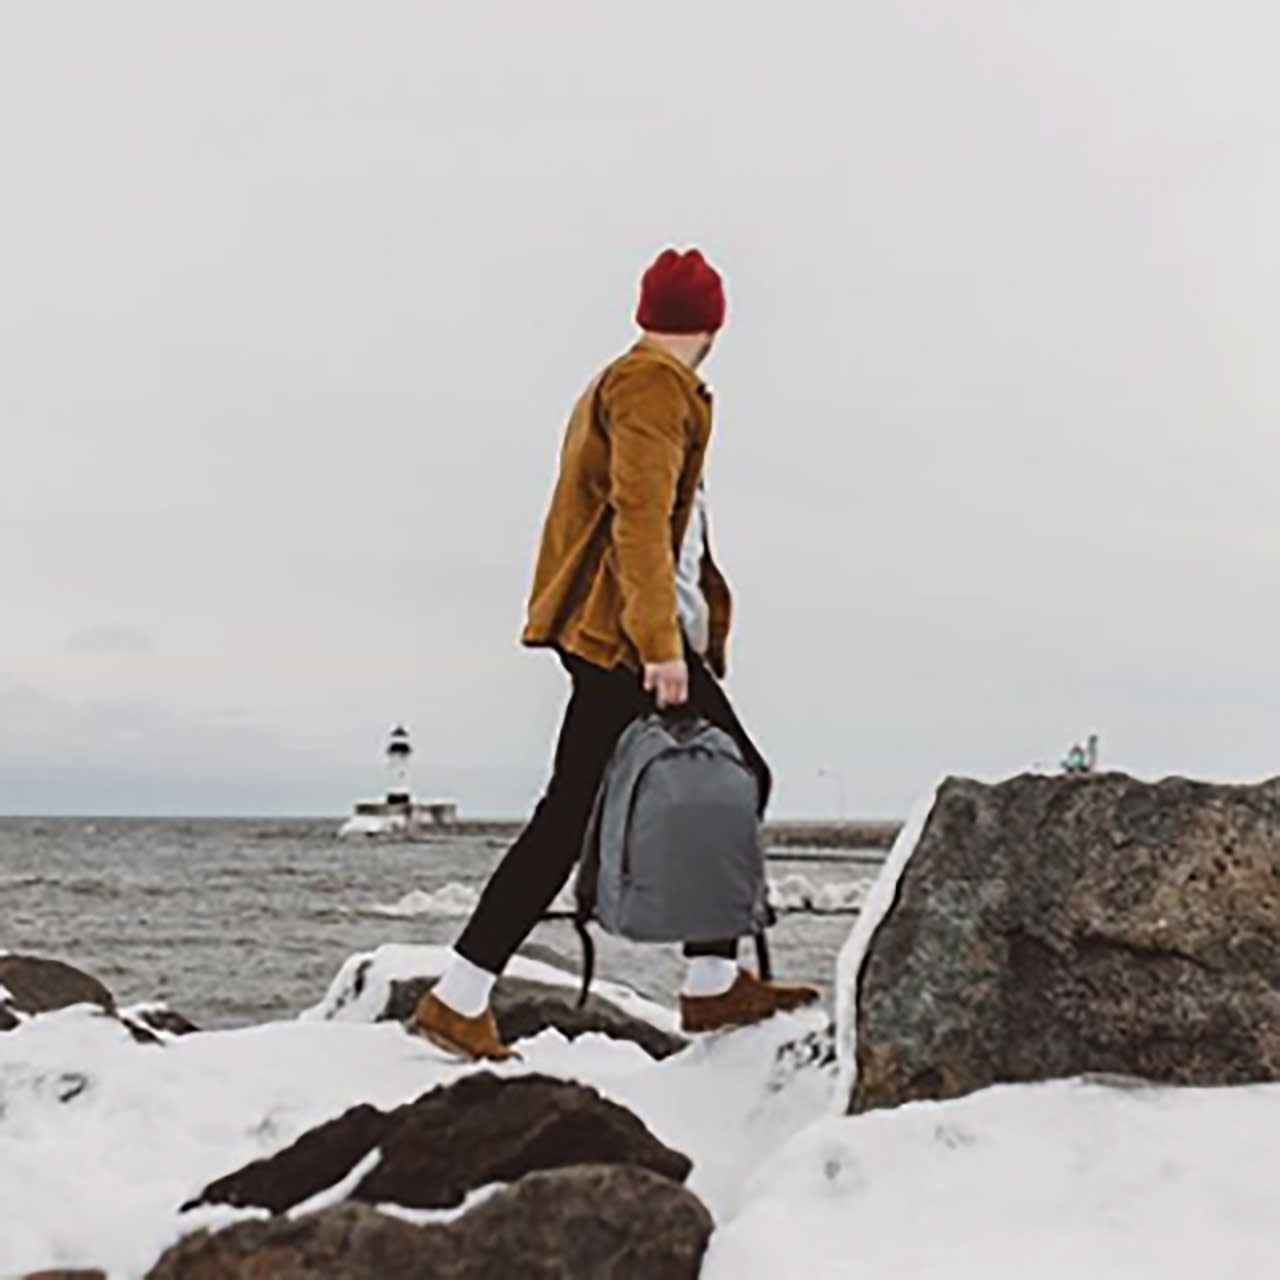 Man in a red beanie with a grey Away backpack walking on snow covered rocks while gazing at a lighthouse.